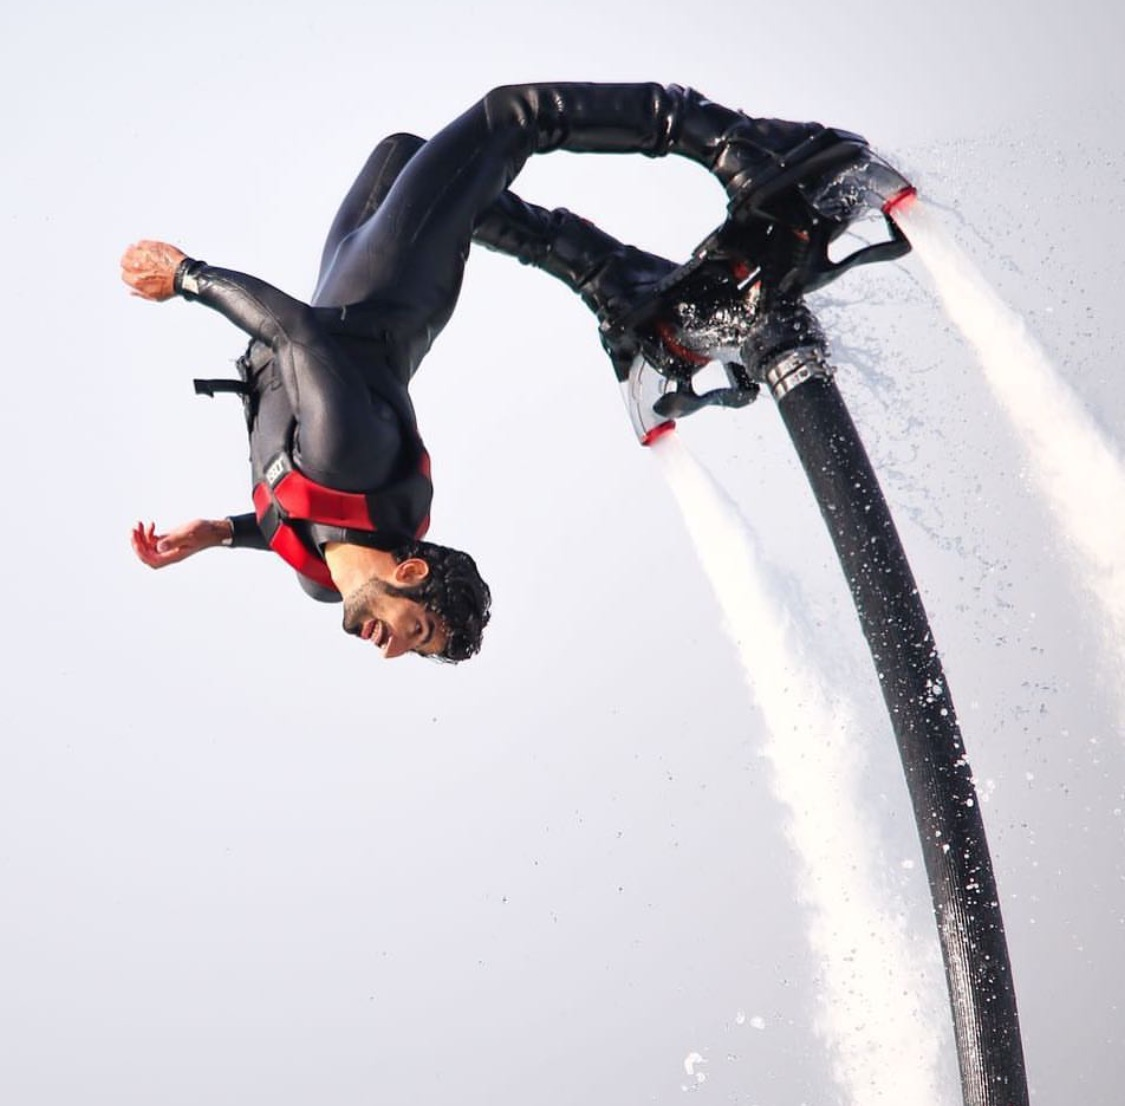 Fly boarding in Dubai